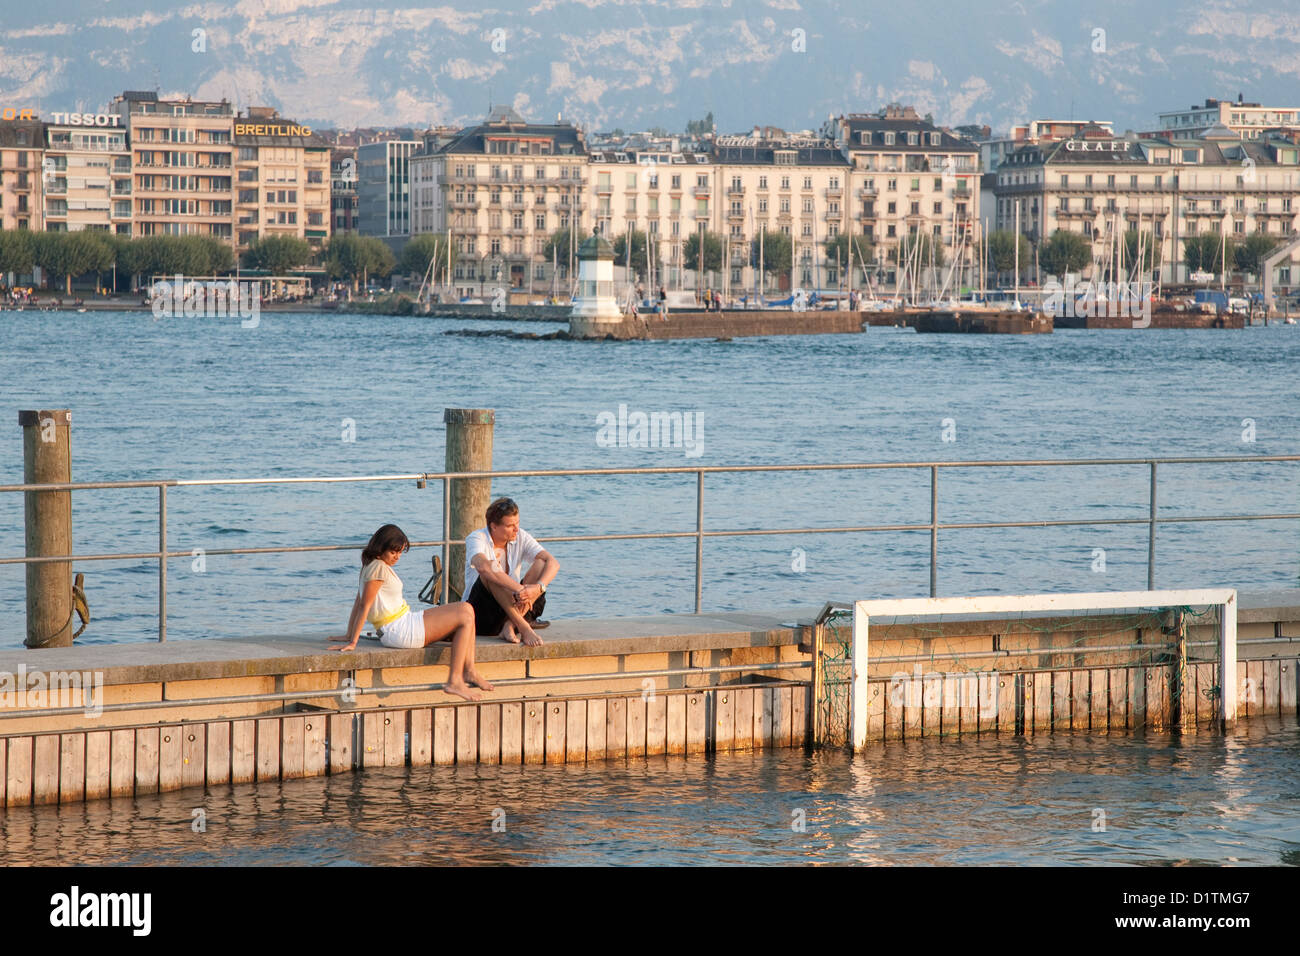 Couple relaxing by the Lake, Geneva, Switzerland, Europe - Stock Image